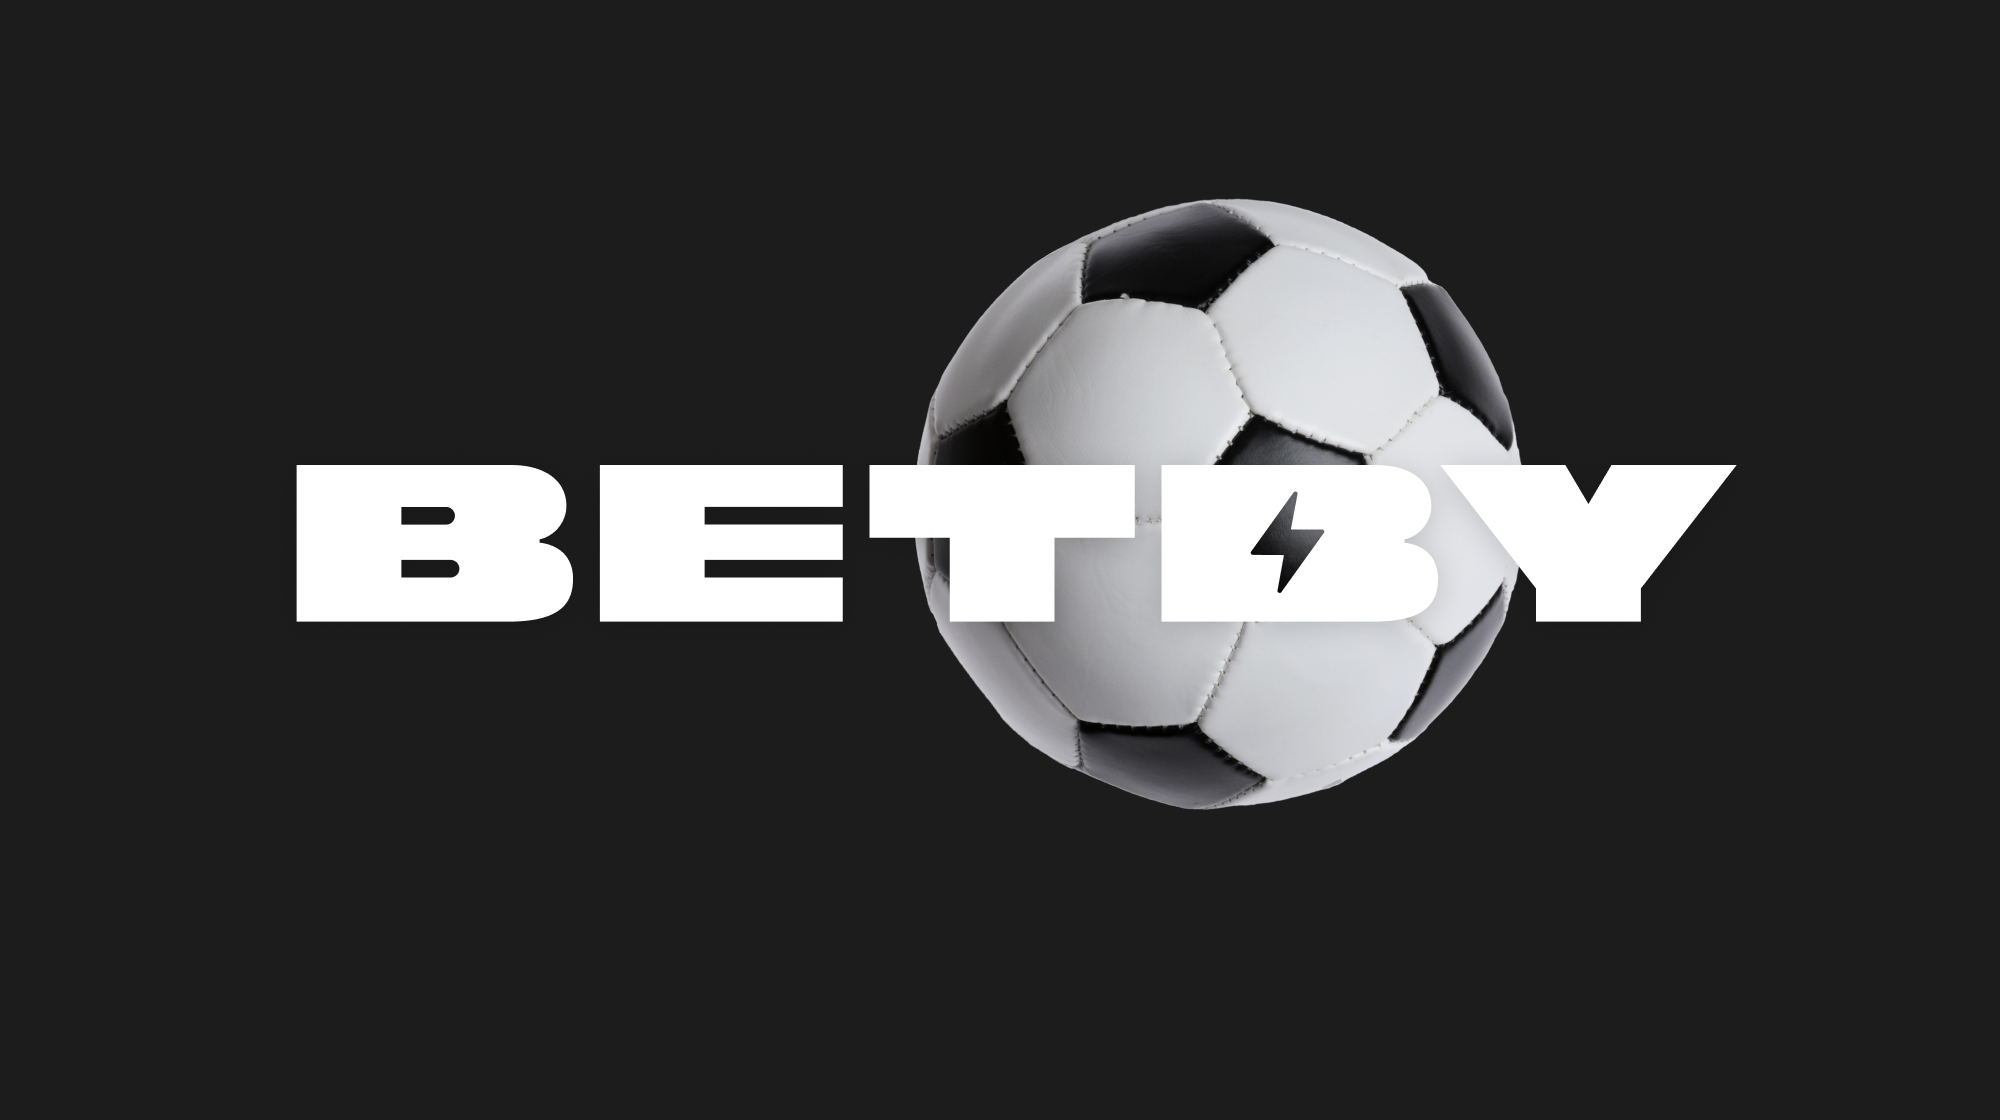 BETBY highlights strength of Betby.Games offering in 2020 betting analysis video